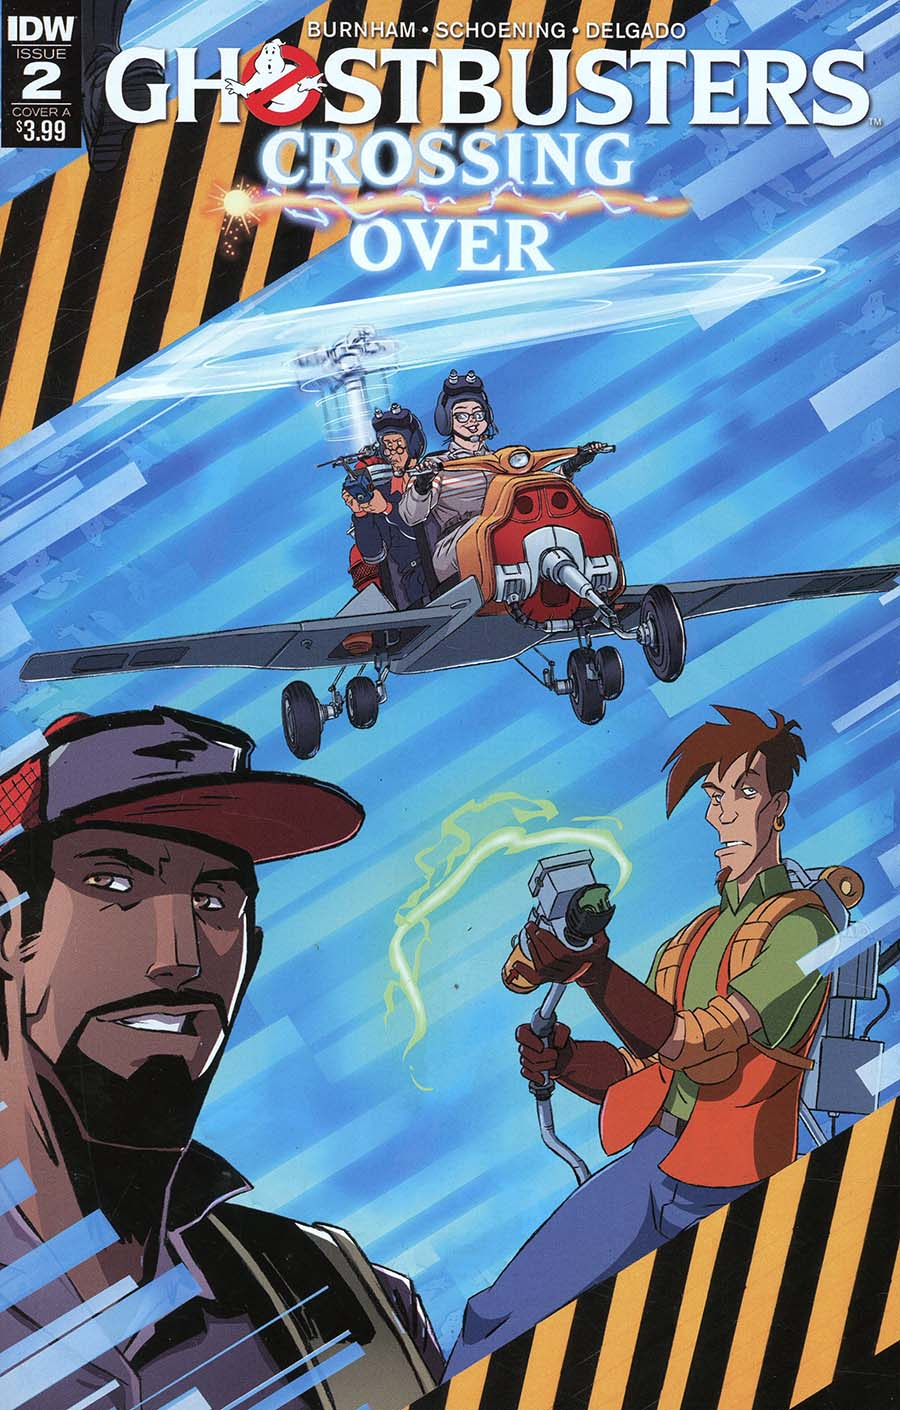 Ghostbusters Crossing Over #2 Cover A Regular Dan Schoening Cover